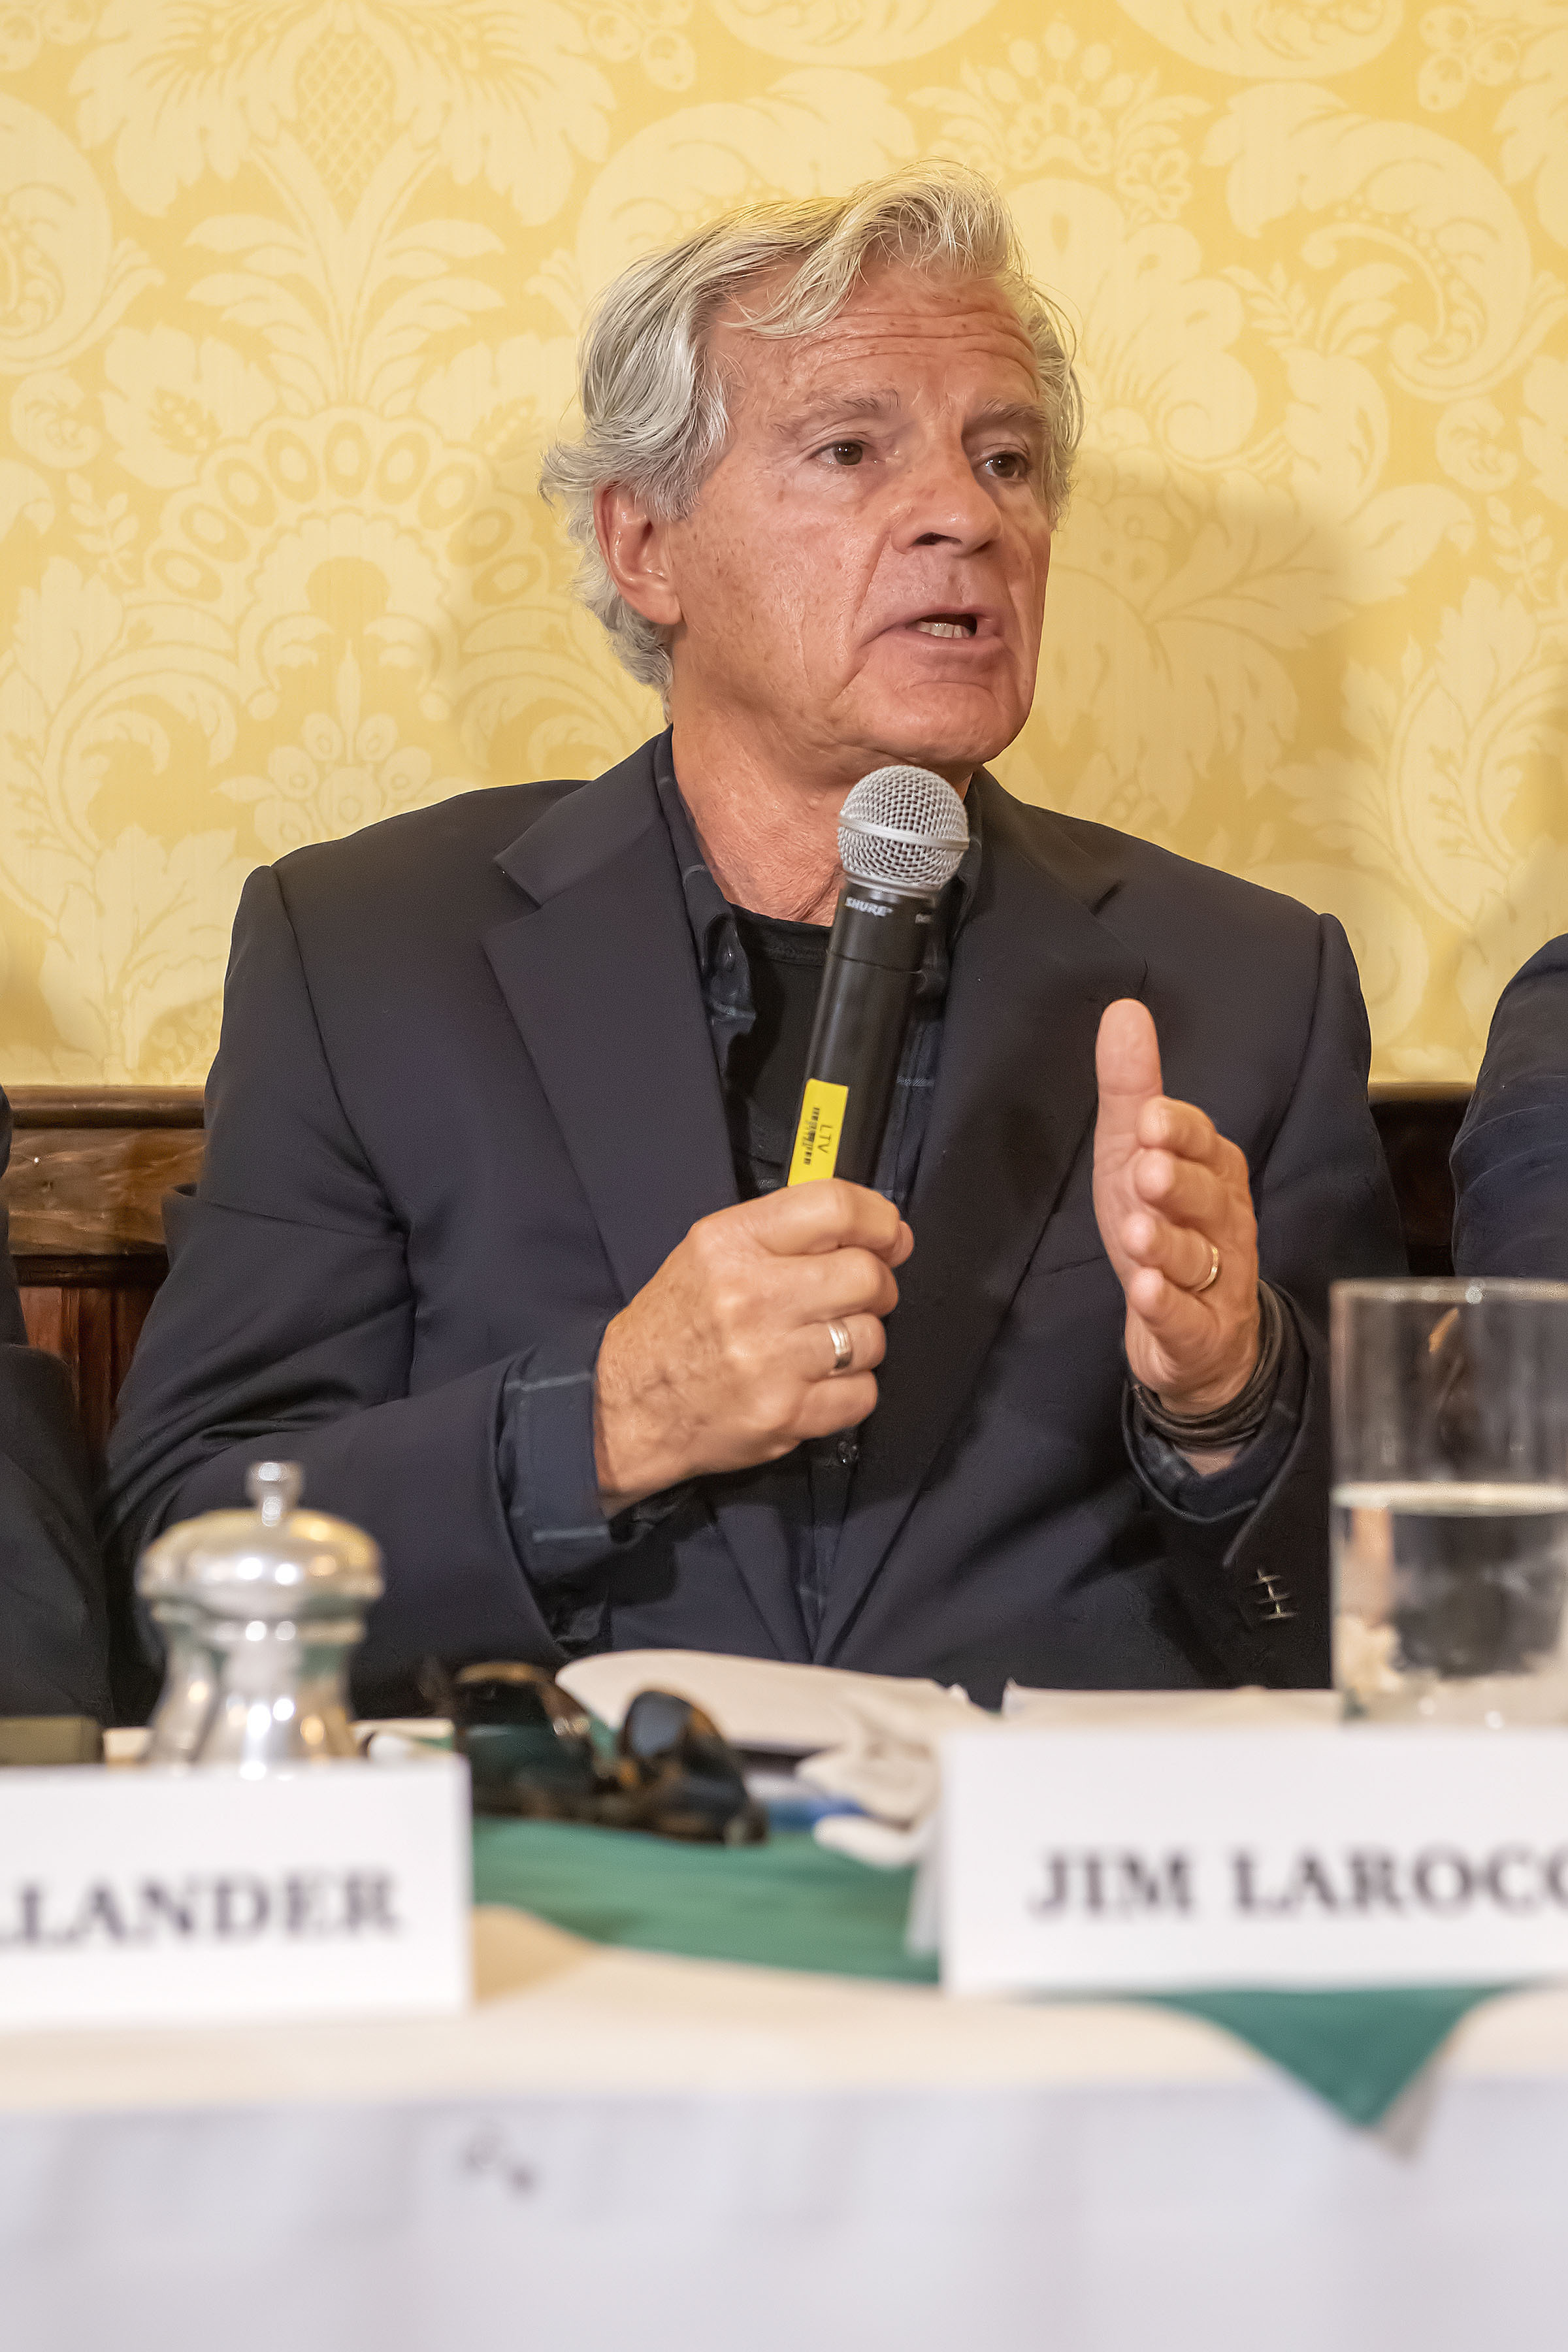 Panelist Jim Larocca speaks during the Express Sessions - Sag Harbor Public Spaces event at the American Hotel in Sag Harbor on Friday.    MICHAEL HELLER